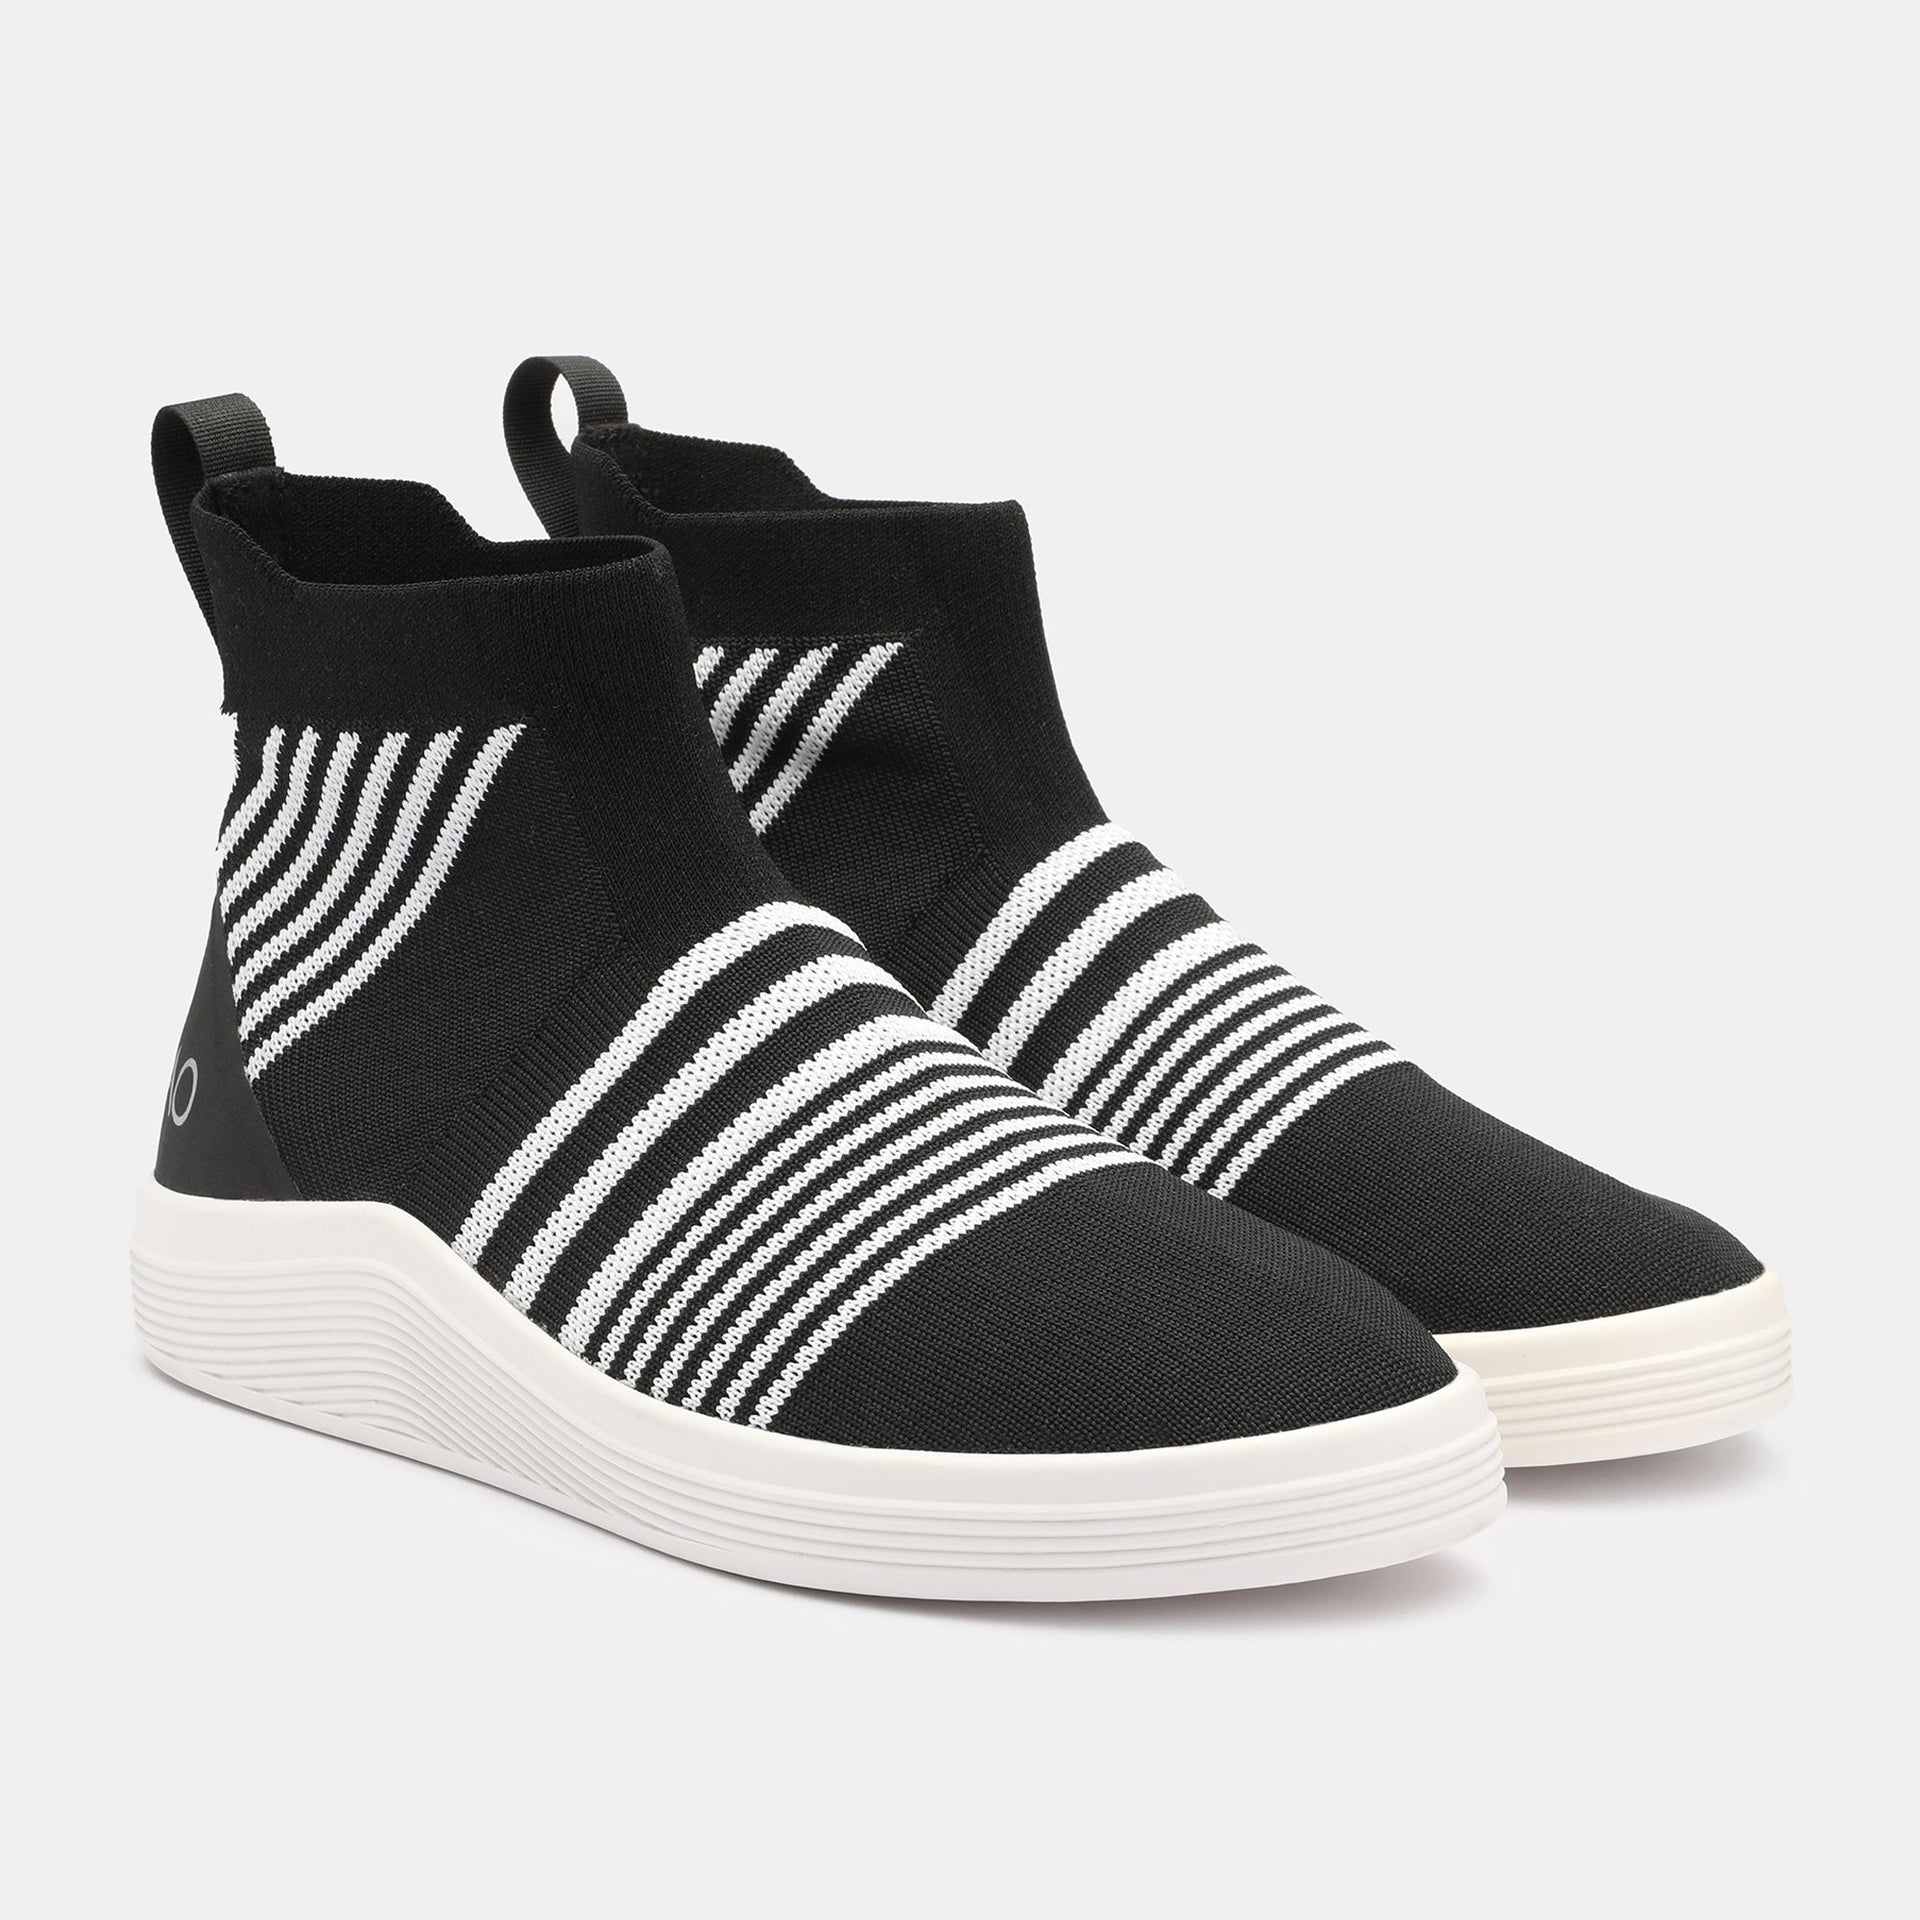 STRIPES 5.10 BLACK WHITE